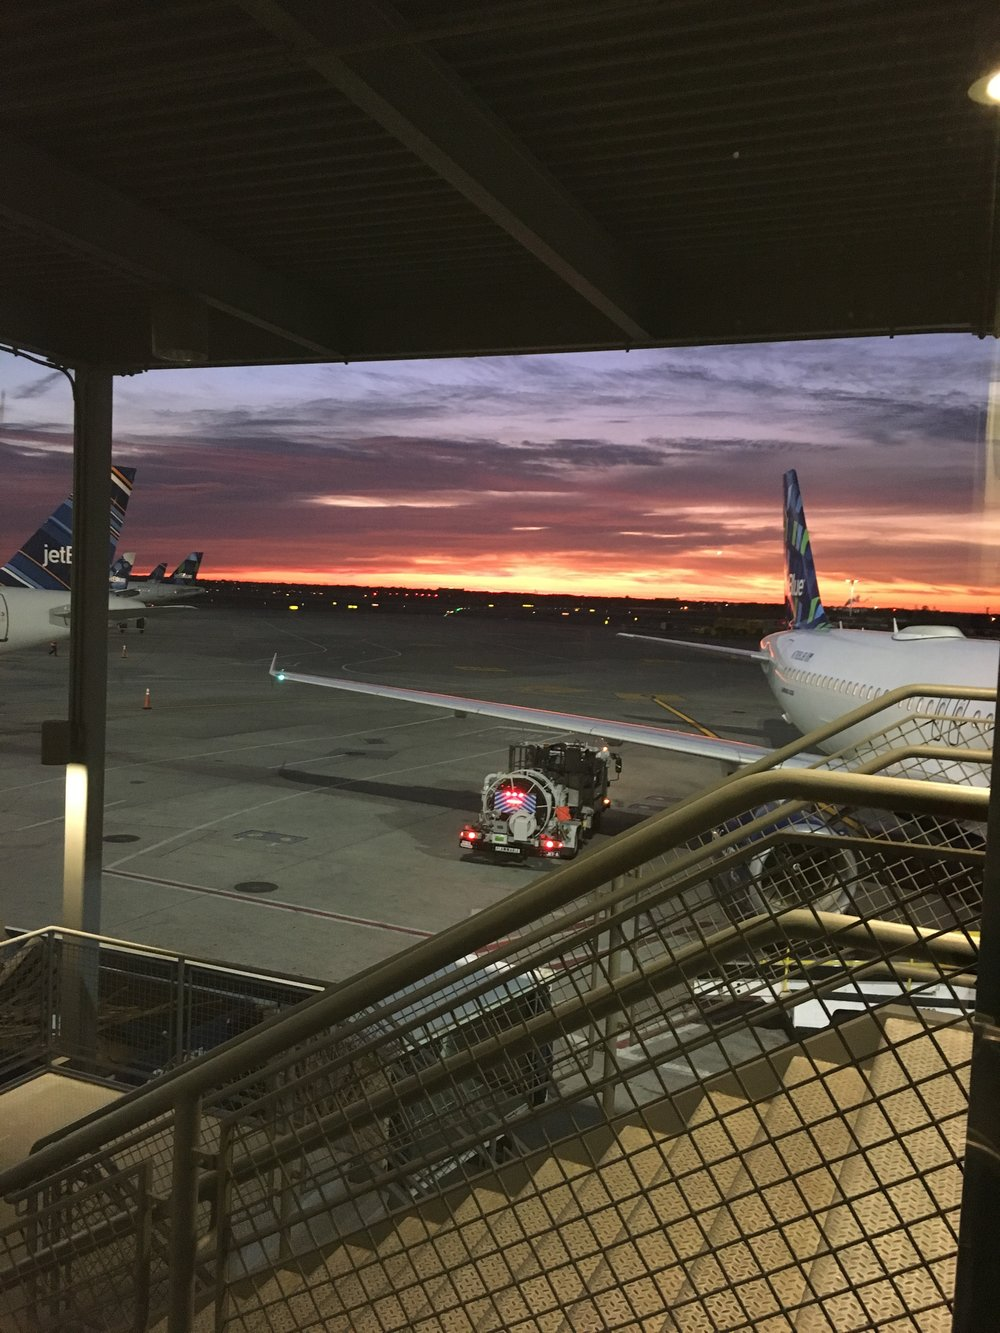 Sunrise at JFK